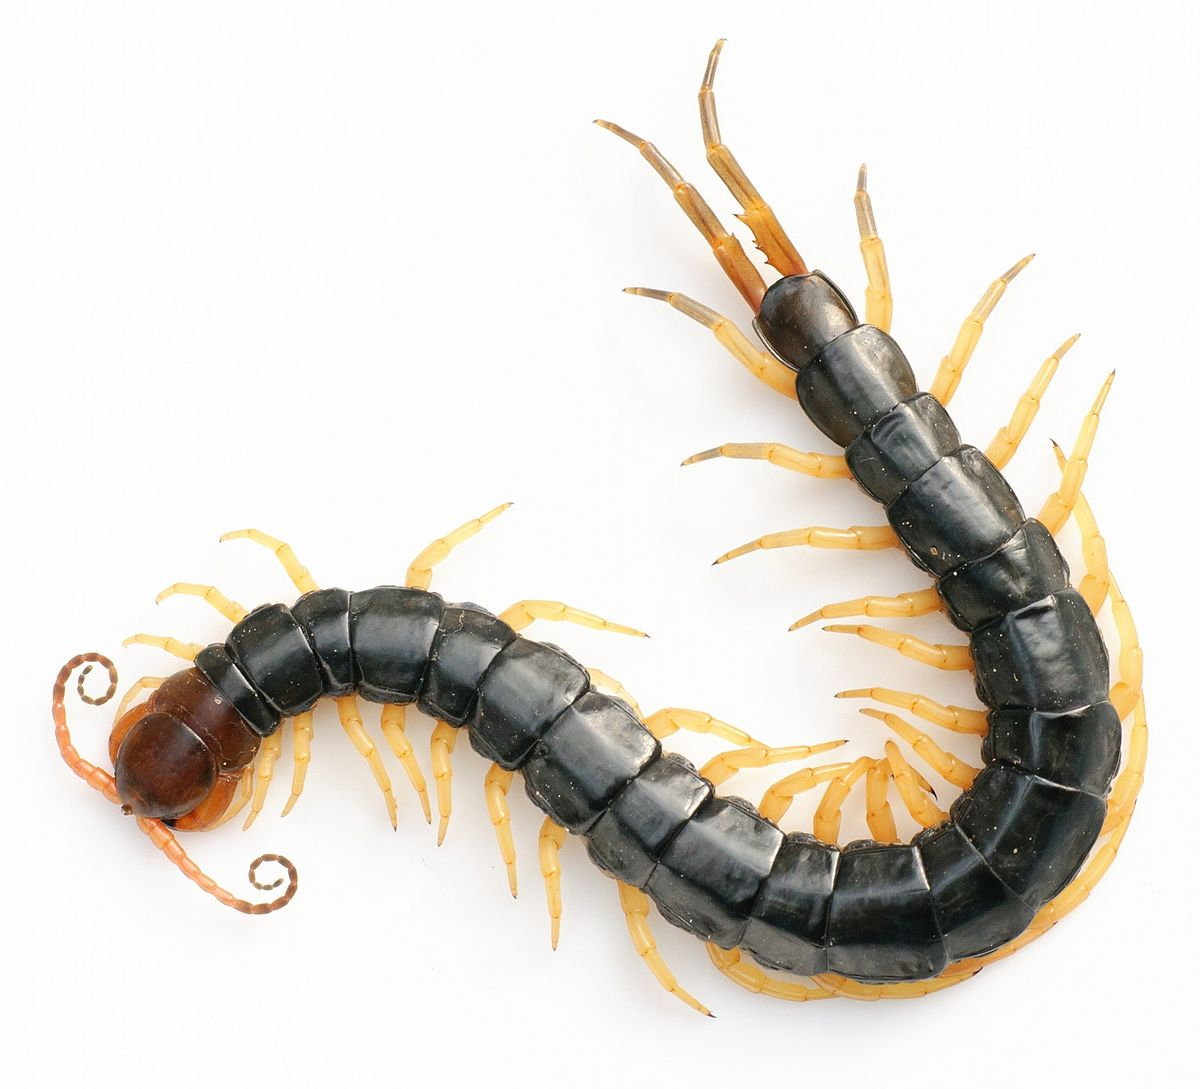 Chinese red-headed centipede - Wikipedia